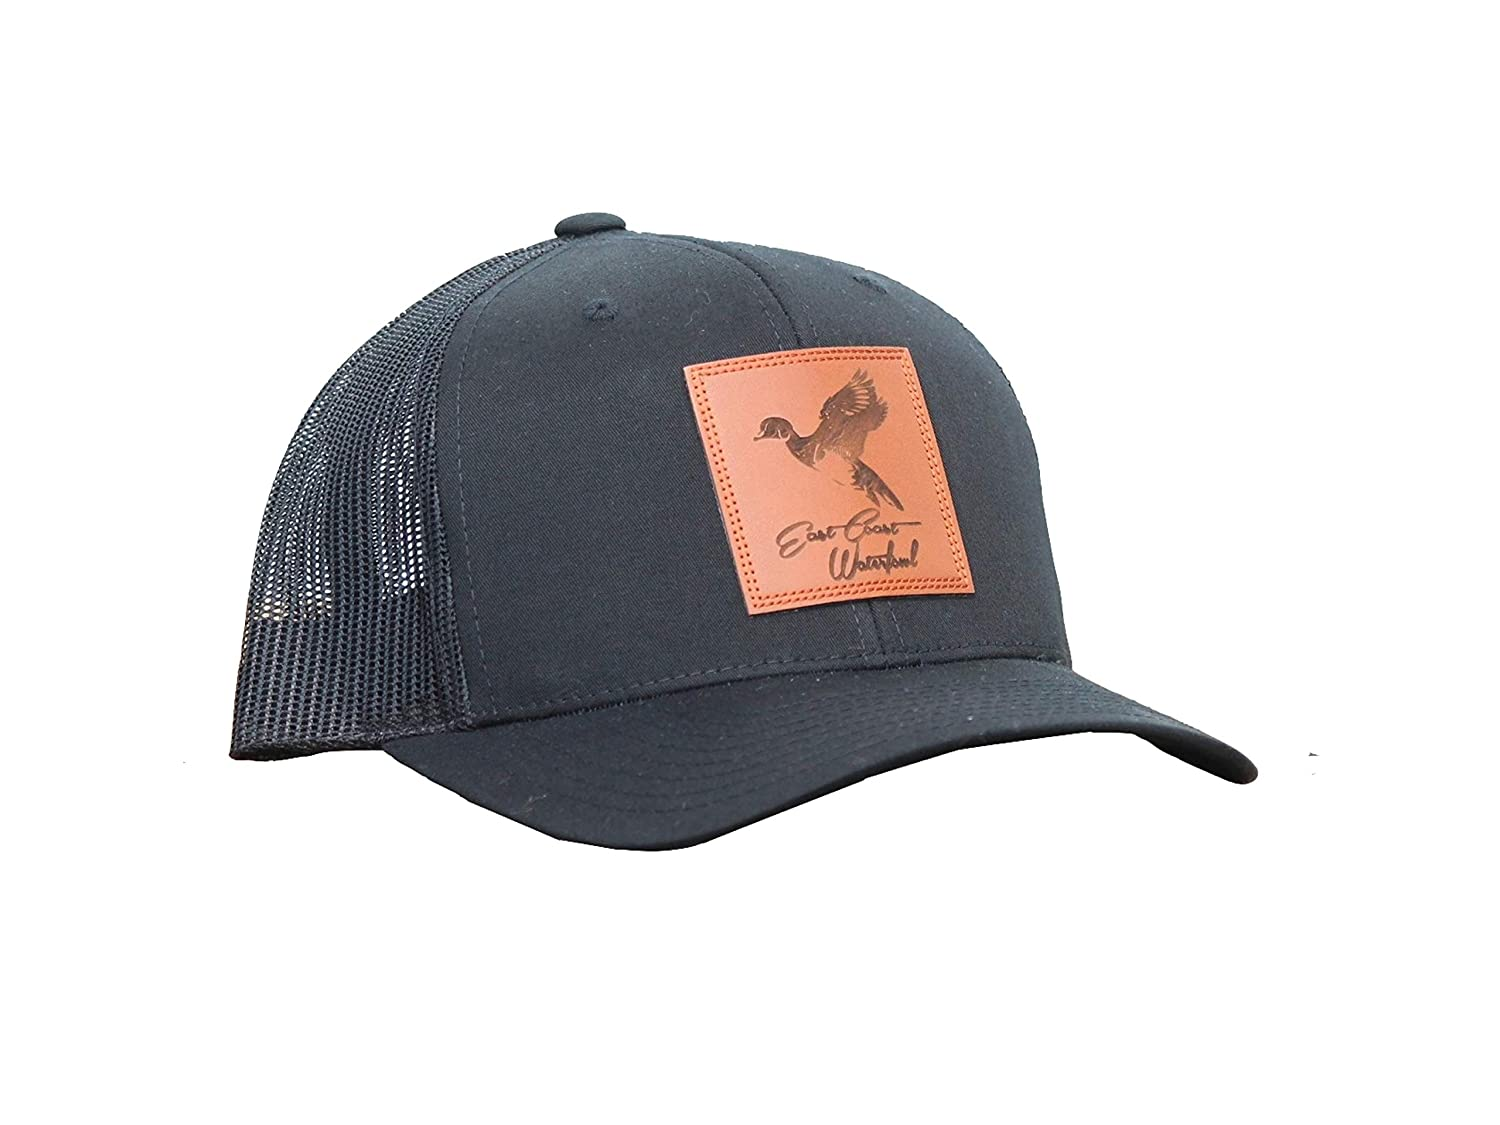 96f1909461d5b Amazon.com   Hunting and Fishing Depot Wood Duck Leather Patch Trucker Hat